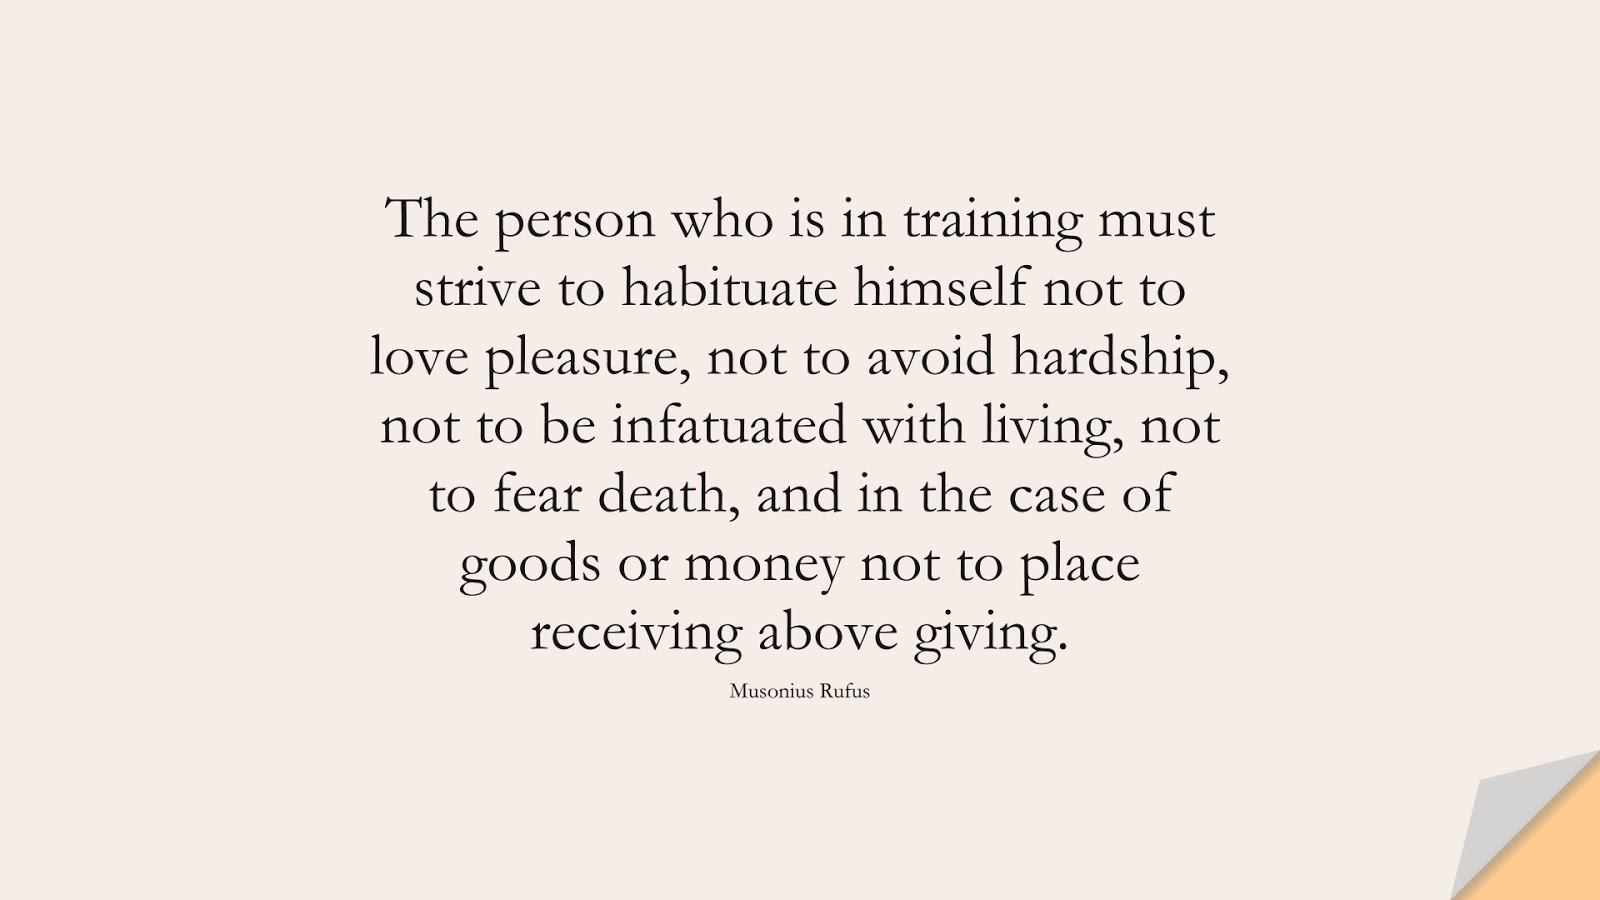 The person who is in training must strive to habituate himself not to love pleasure, not to avoid hardship, not to be infatuated with living, not to fear death, and in the case of goods or money not to place receiving above giving. (Musonius Rufus);  #BeingStrongQuotes